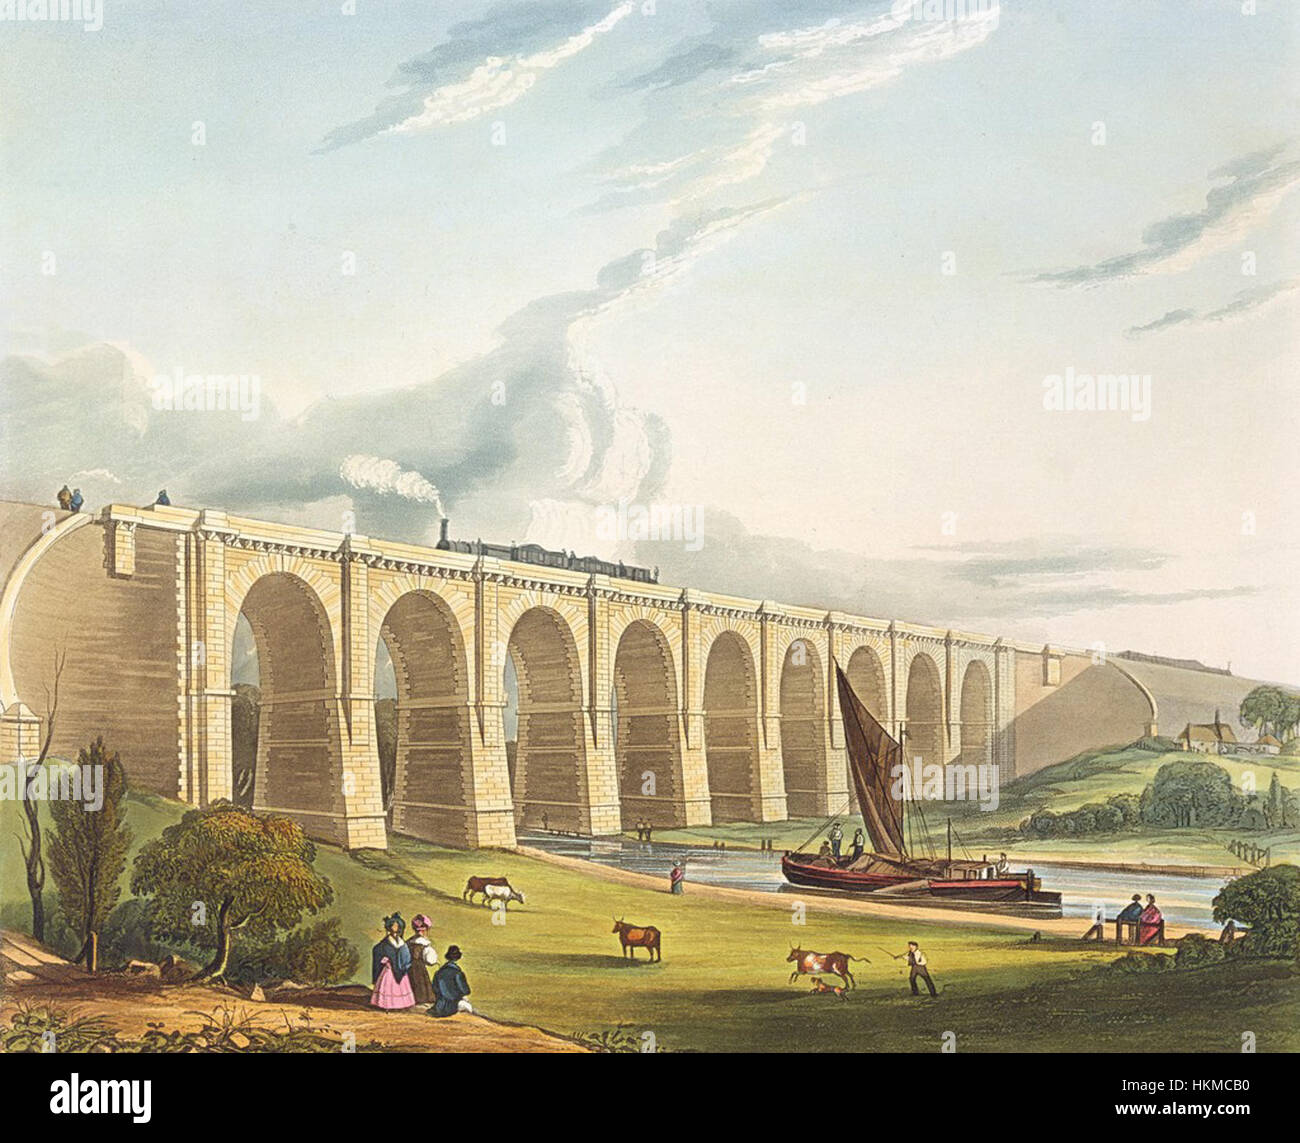 Viaduct across the Sankey Valley, from Bury's Liverpool and Manchester Railway, 1831 - artfinder 122455 Stock Photo